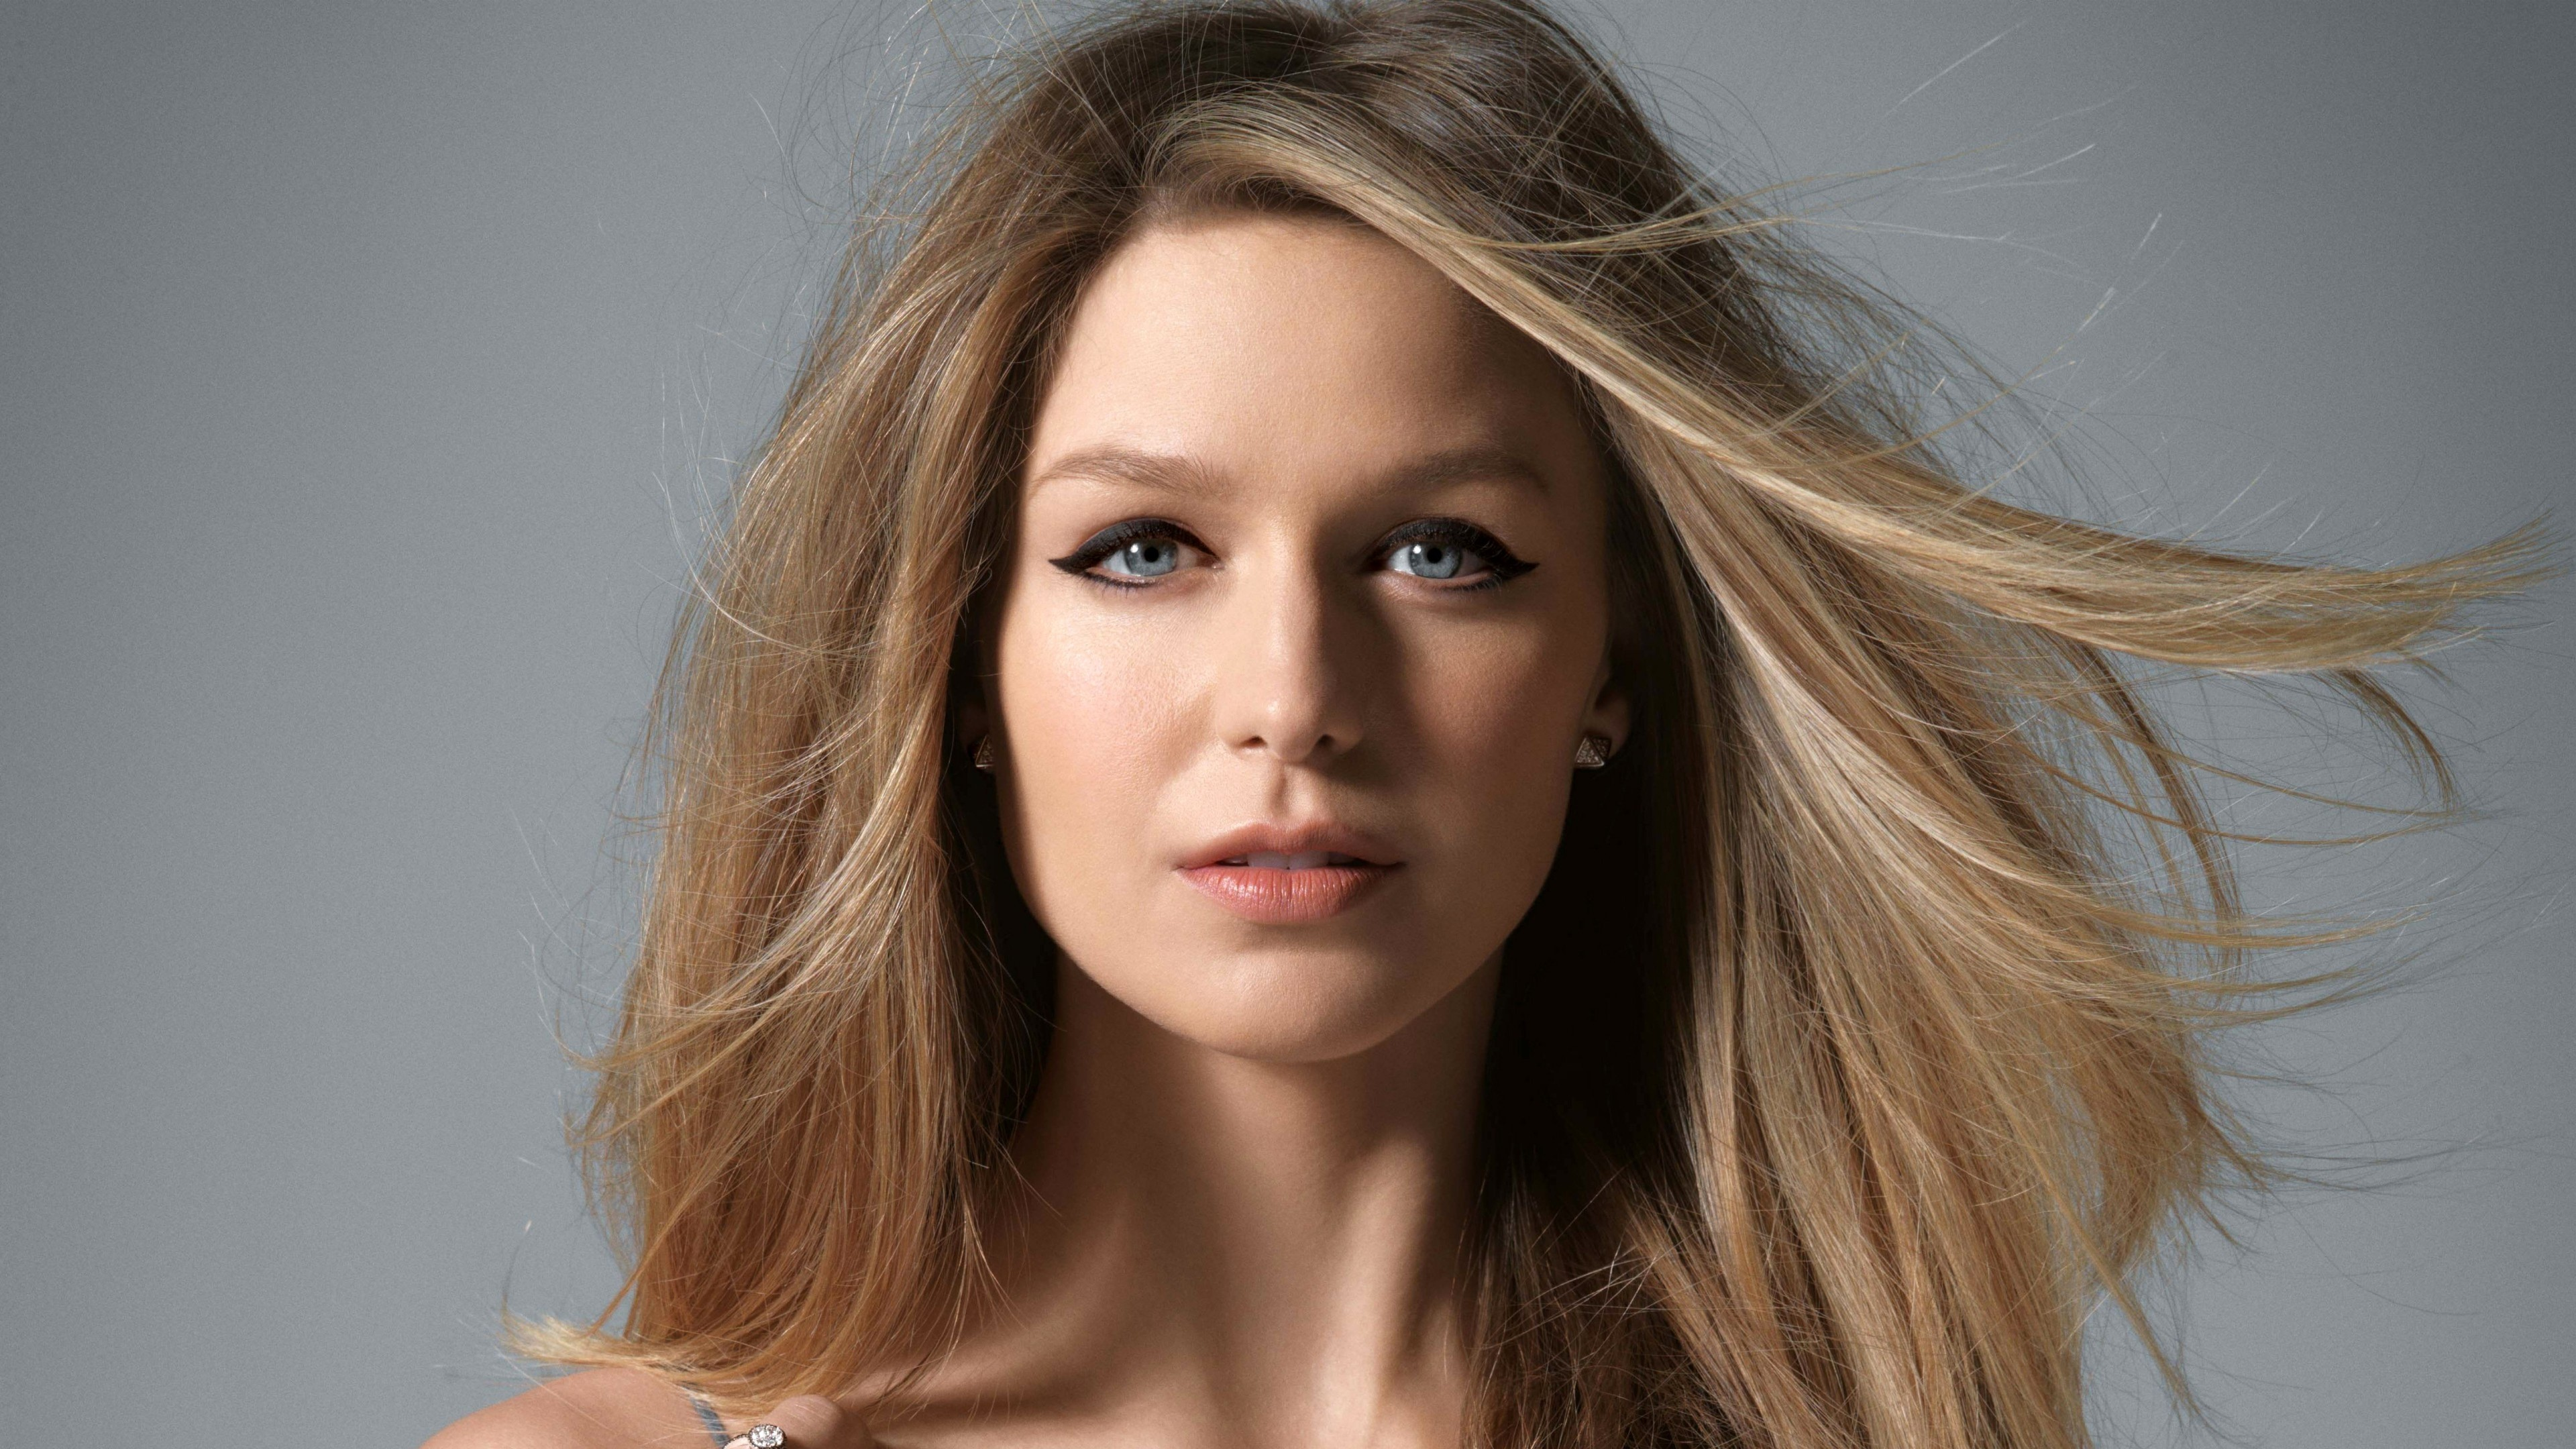 Melissa Benoist Ethnicity, Race, and Nationality